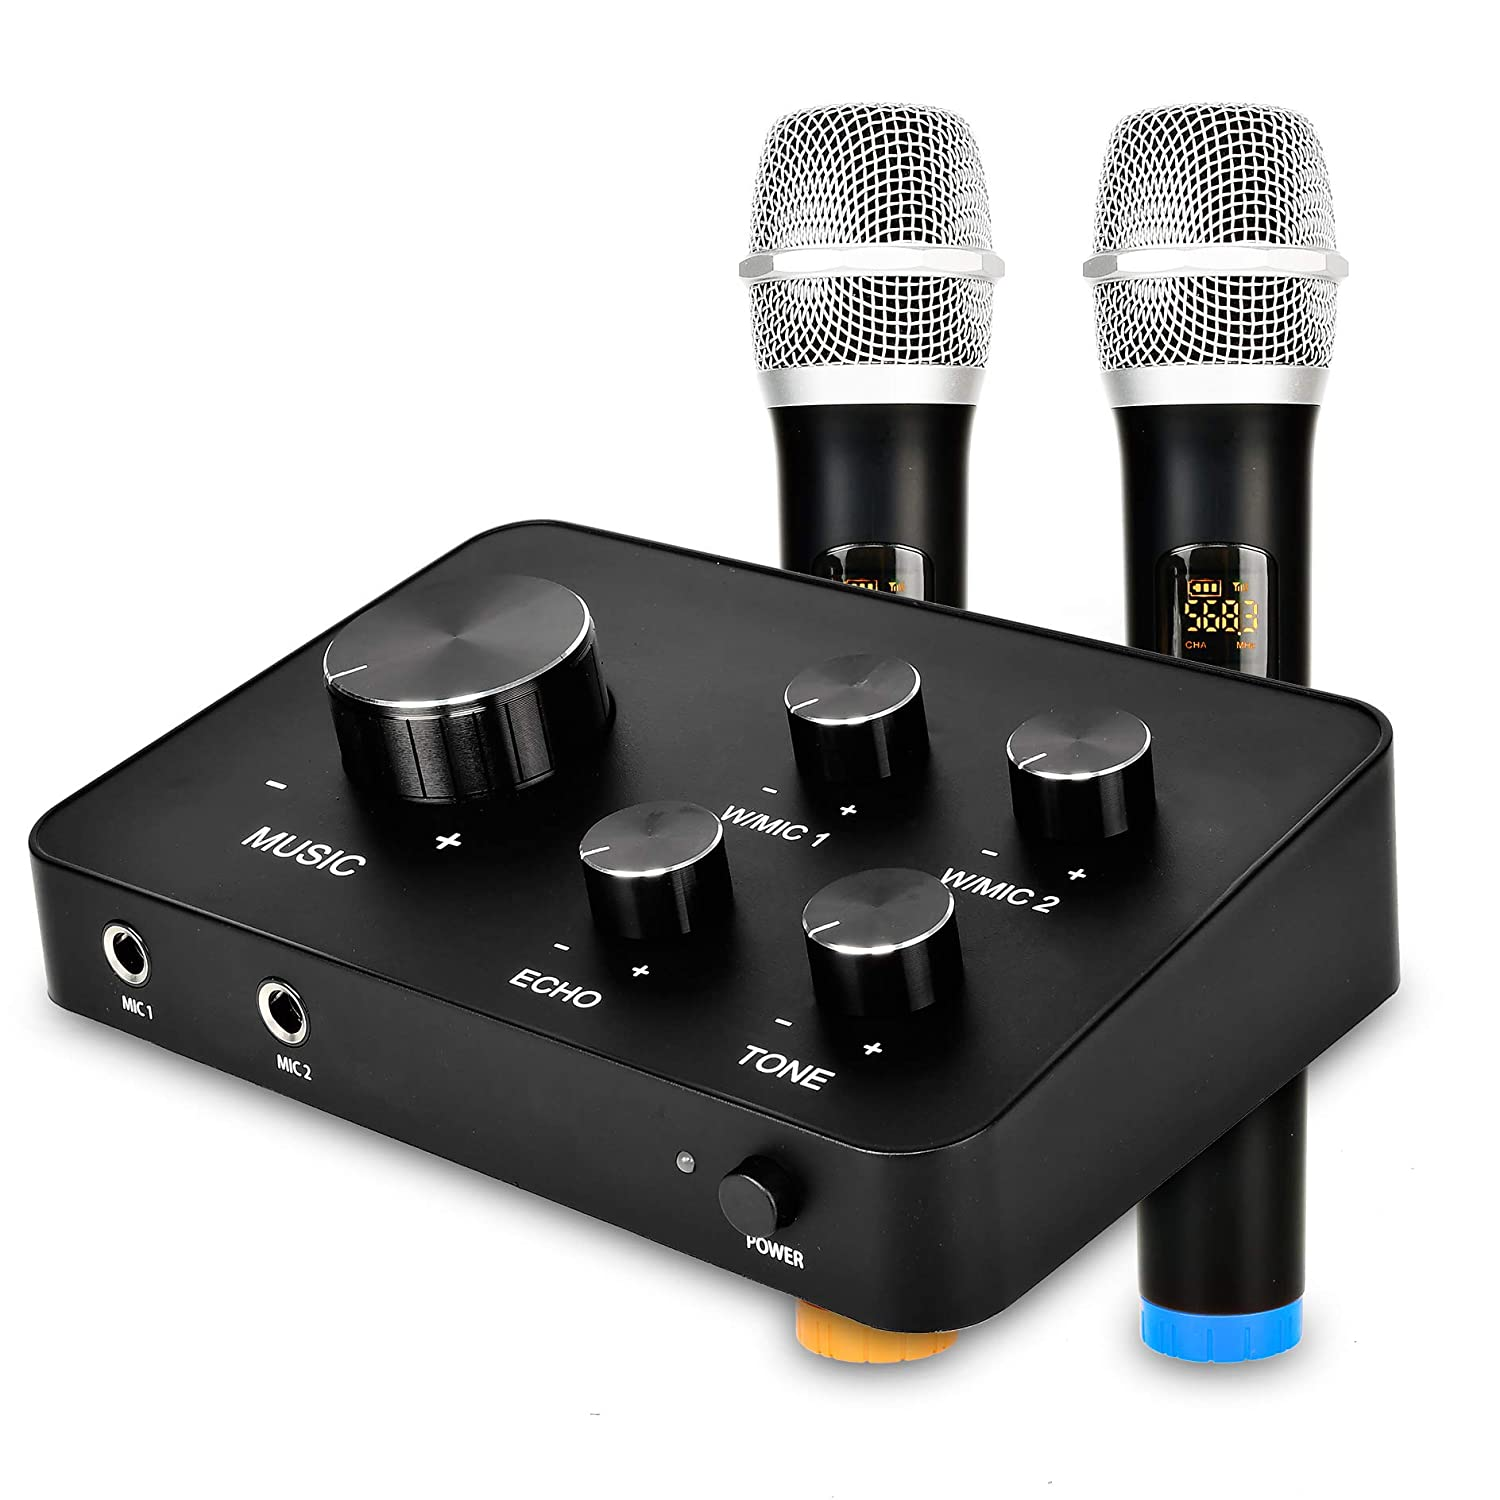 Portable Karaoke Microphone Mixer System Set, with Dual UHF Wireless Mic, HDMI & AUX In/Out for Karaoke, Home Theater, Amplifier, Speaker Rybozen